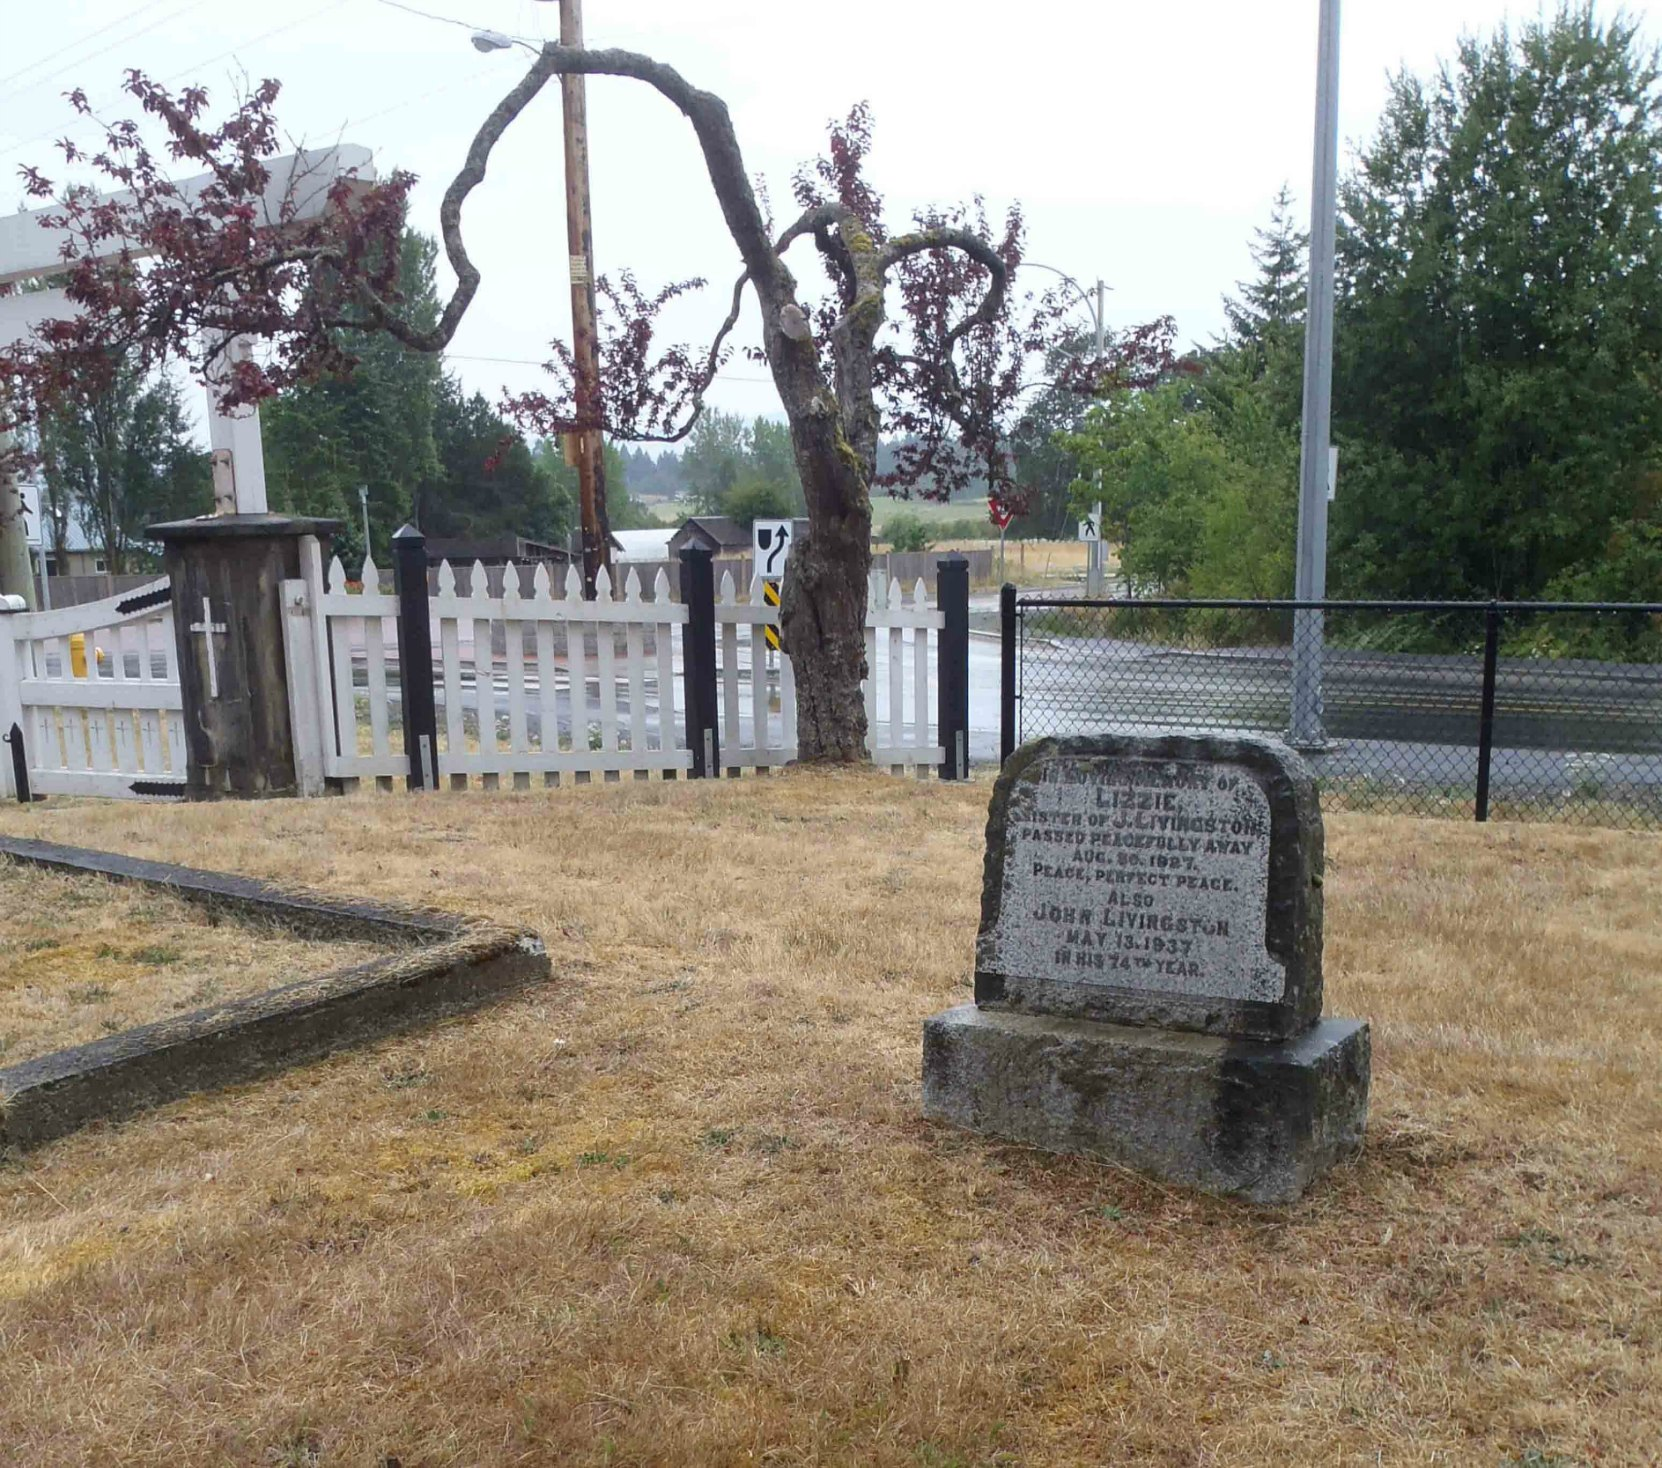 John Livingston grave, Mountain View Cemetery, North Cowichan, B.C.